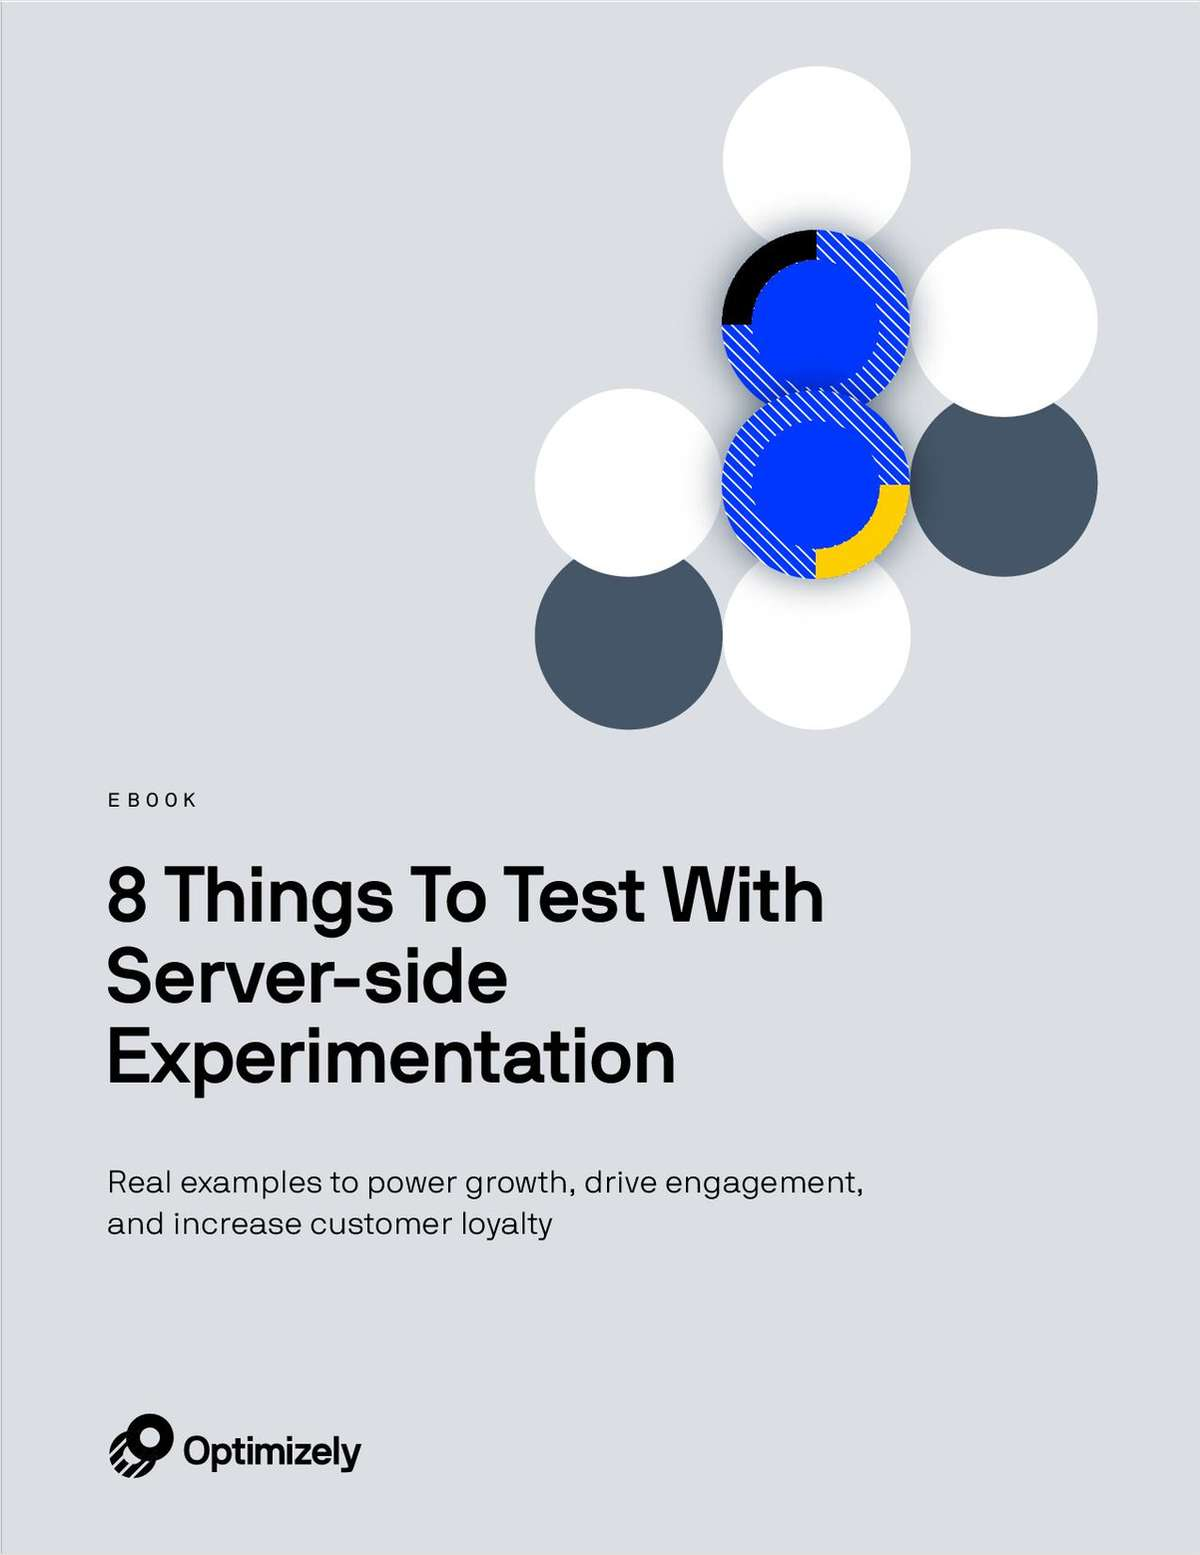 8 Things To Test With Server-Side Experimentation